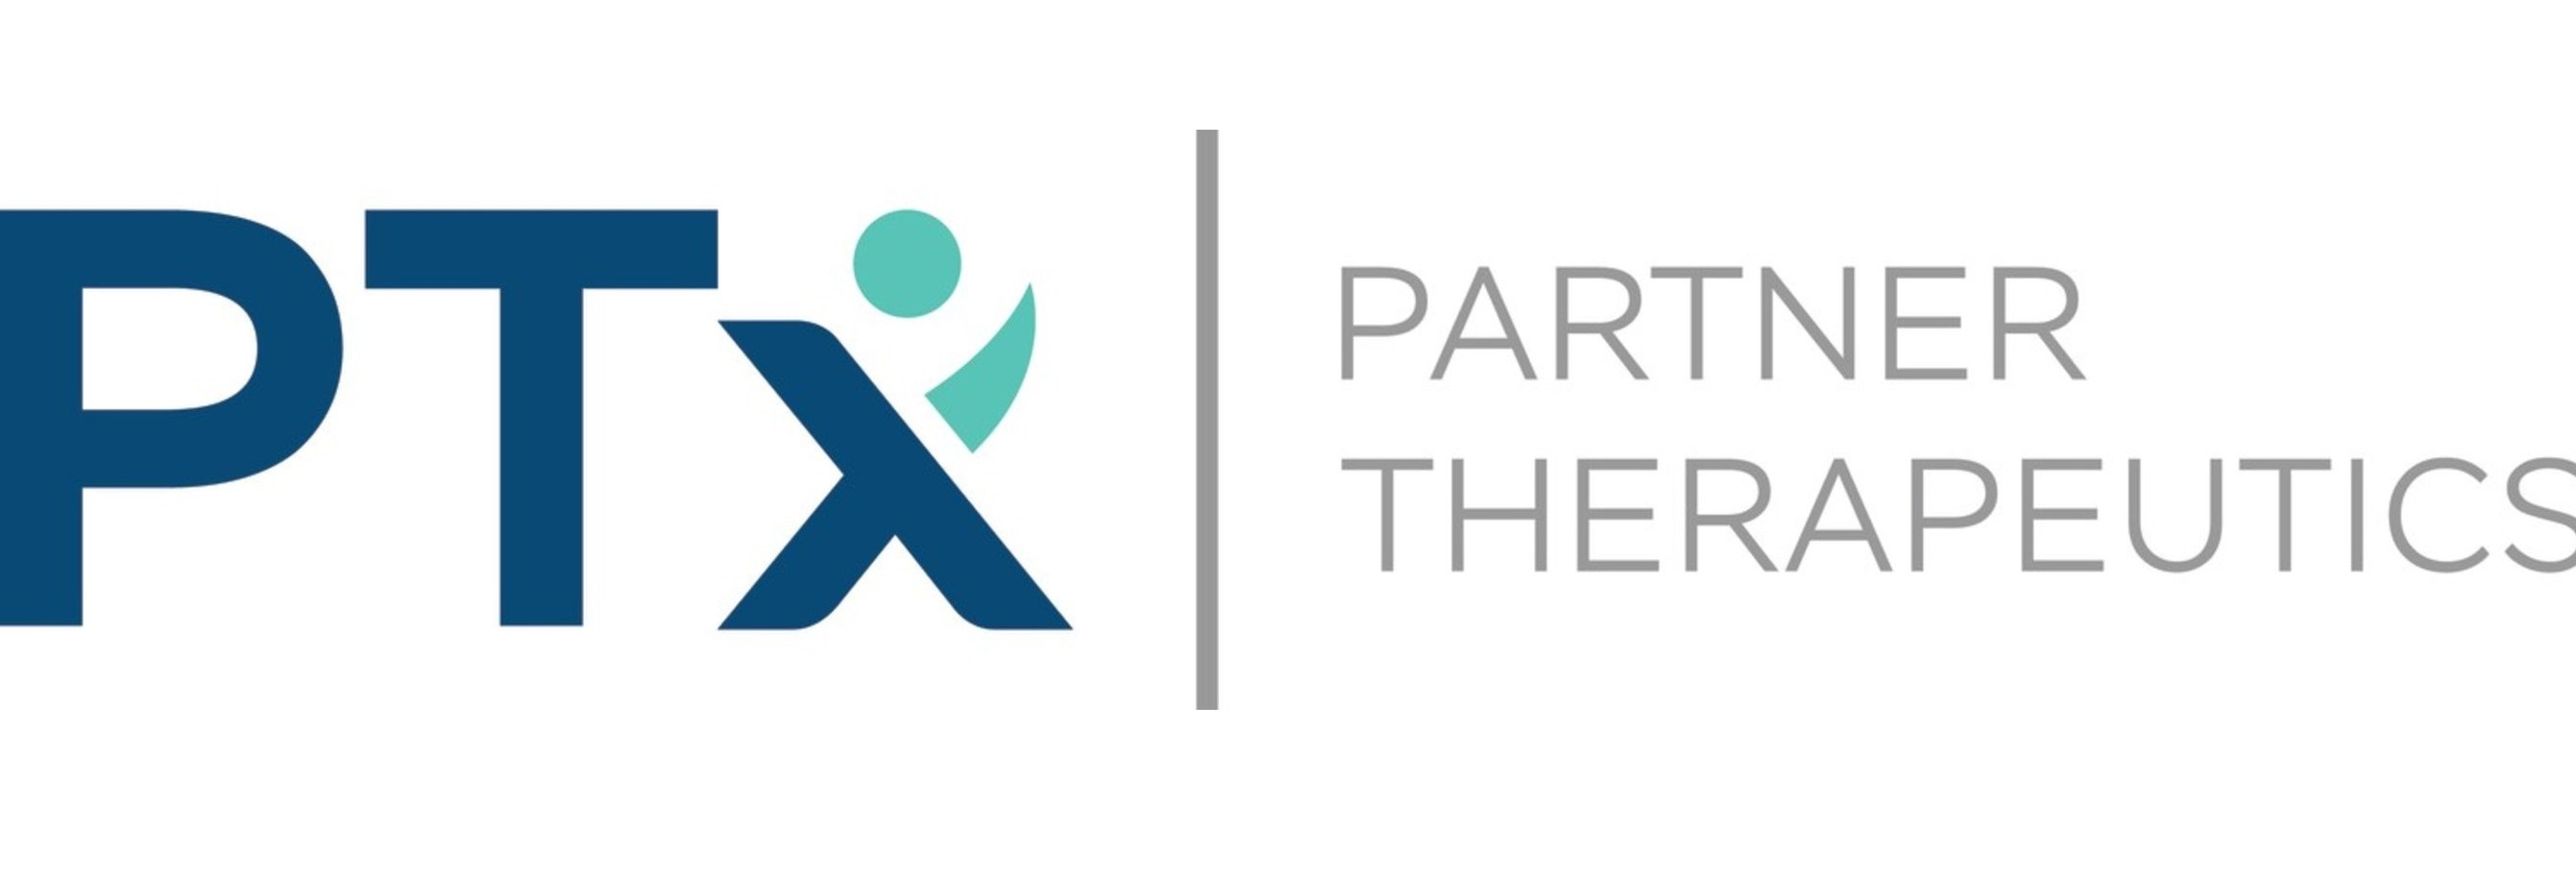 partner theraputics logo